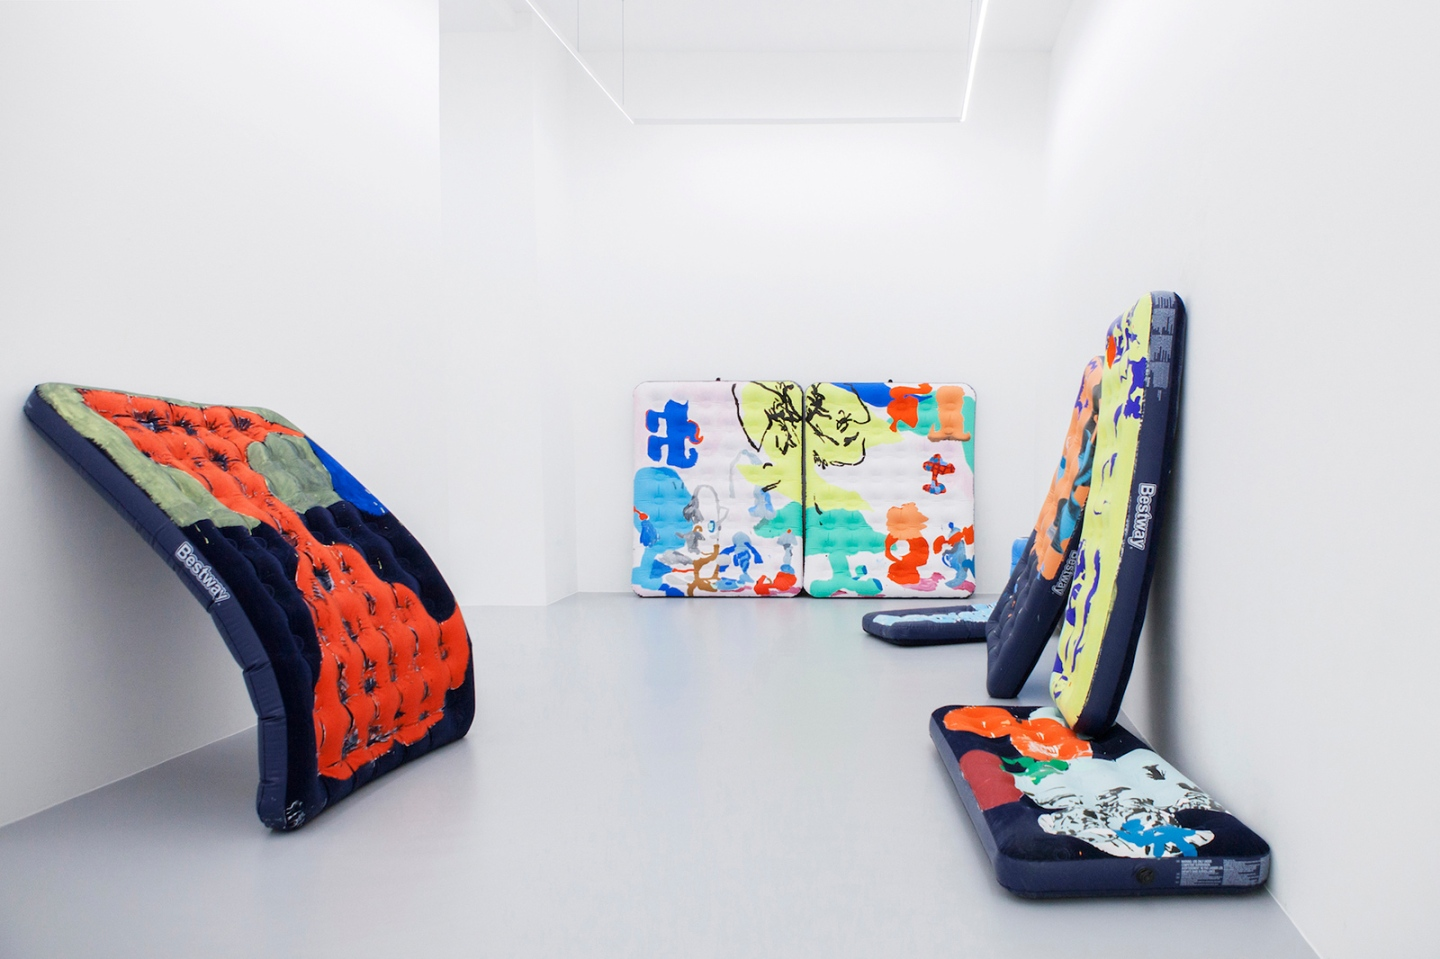 the-fourth-walls-art-exhibition-review-antwan-horfee-sorry-bro-ruttkowski68-gallery-cologne-germany5